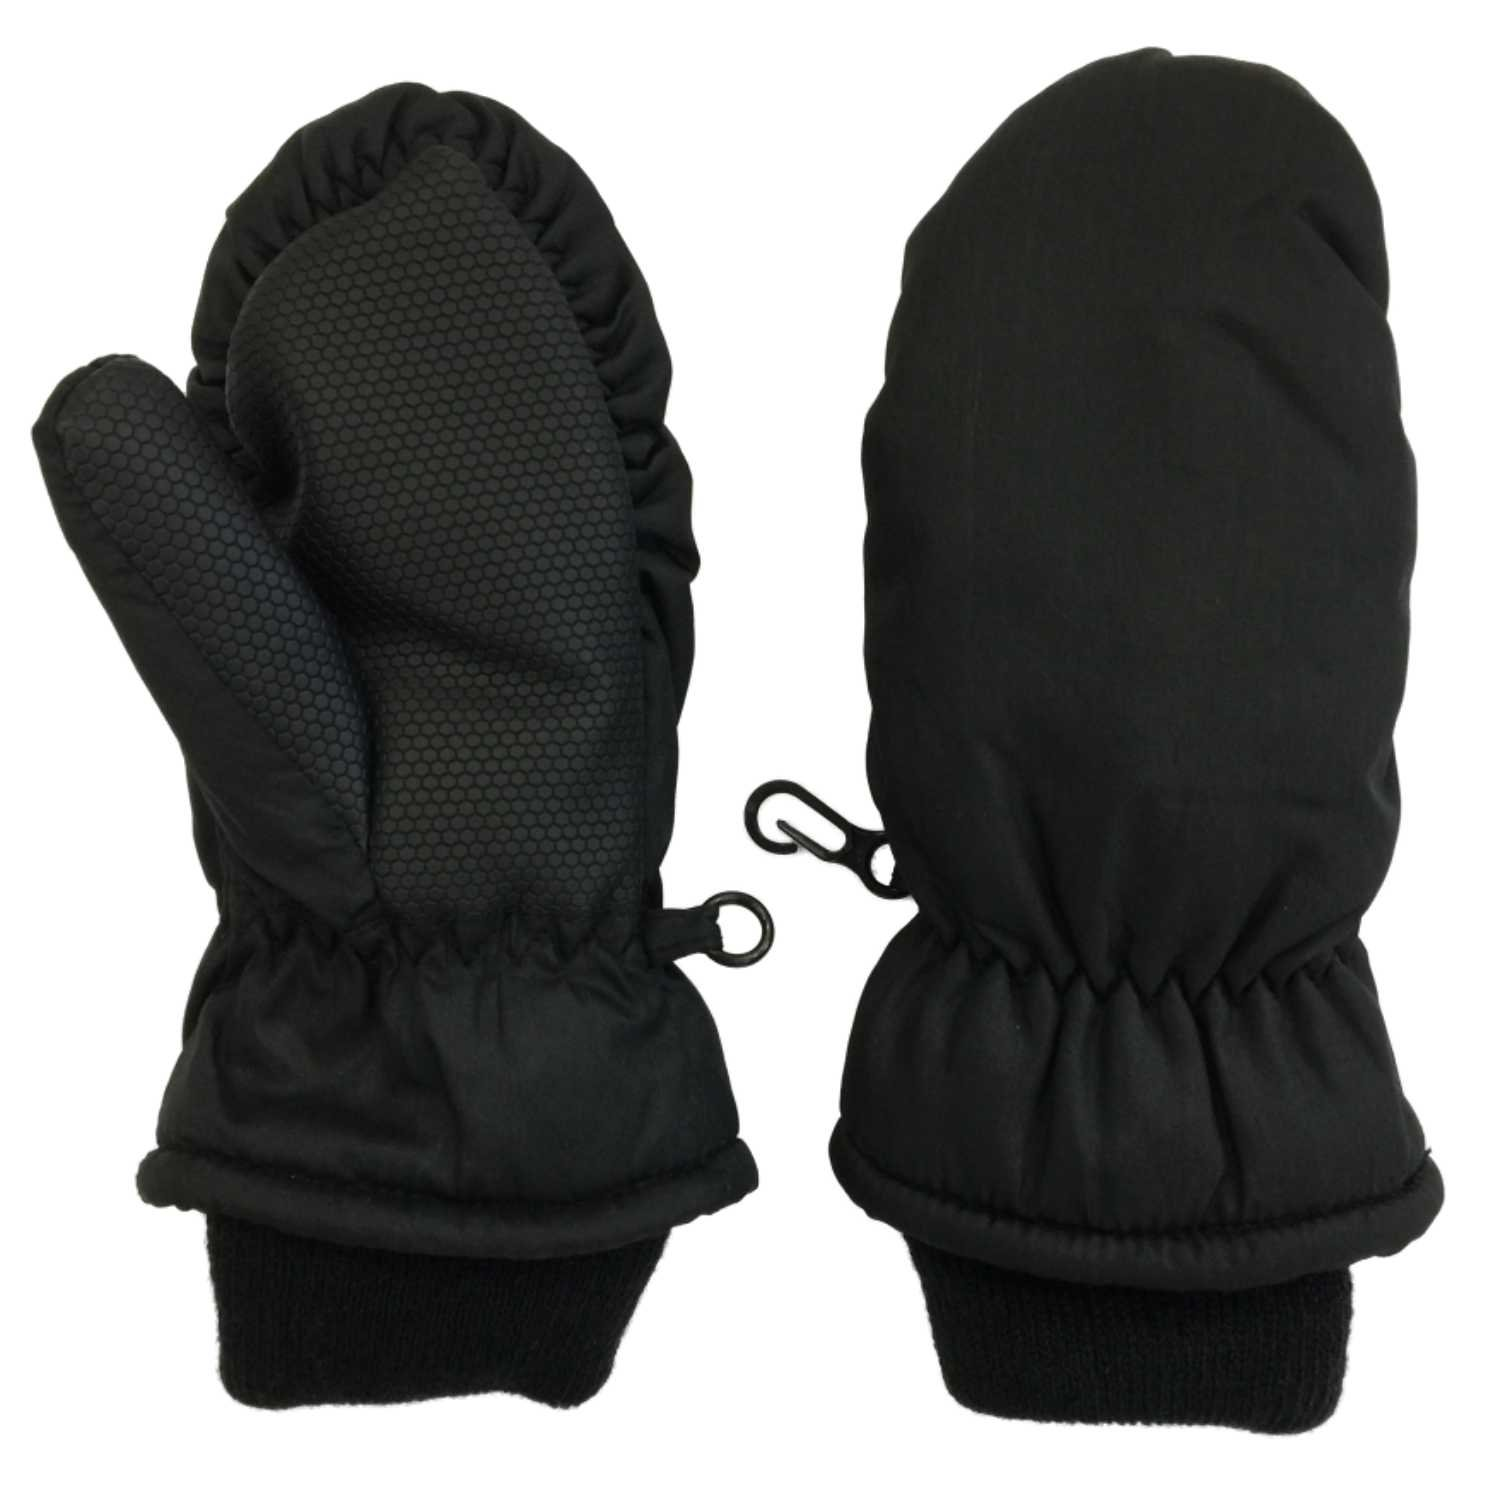 Toddler Girls & Boys Black Thinsulate Snow & Ski Mittens Aquarius